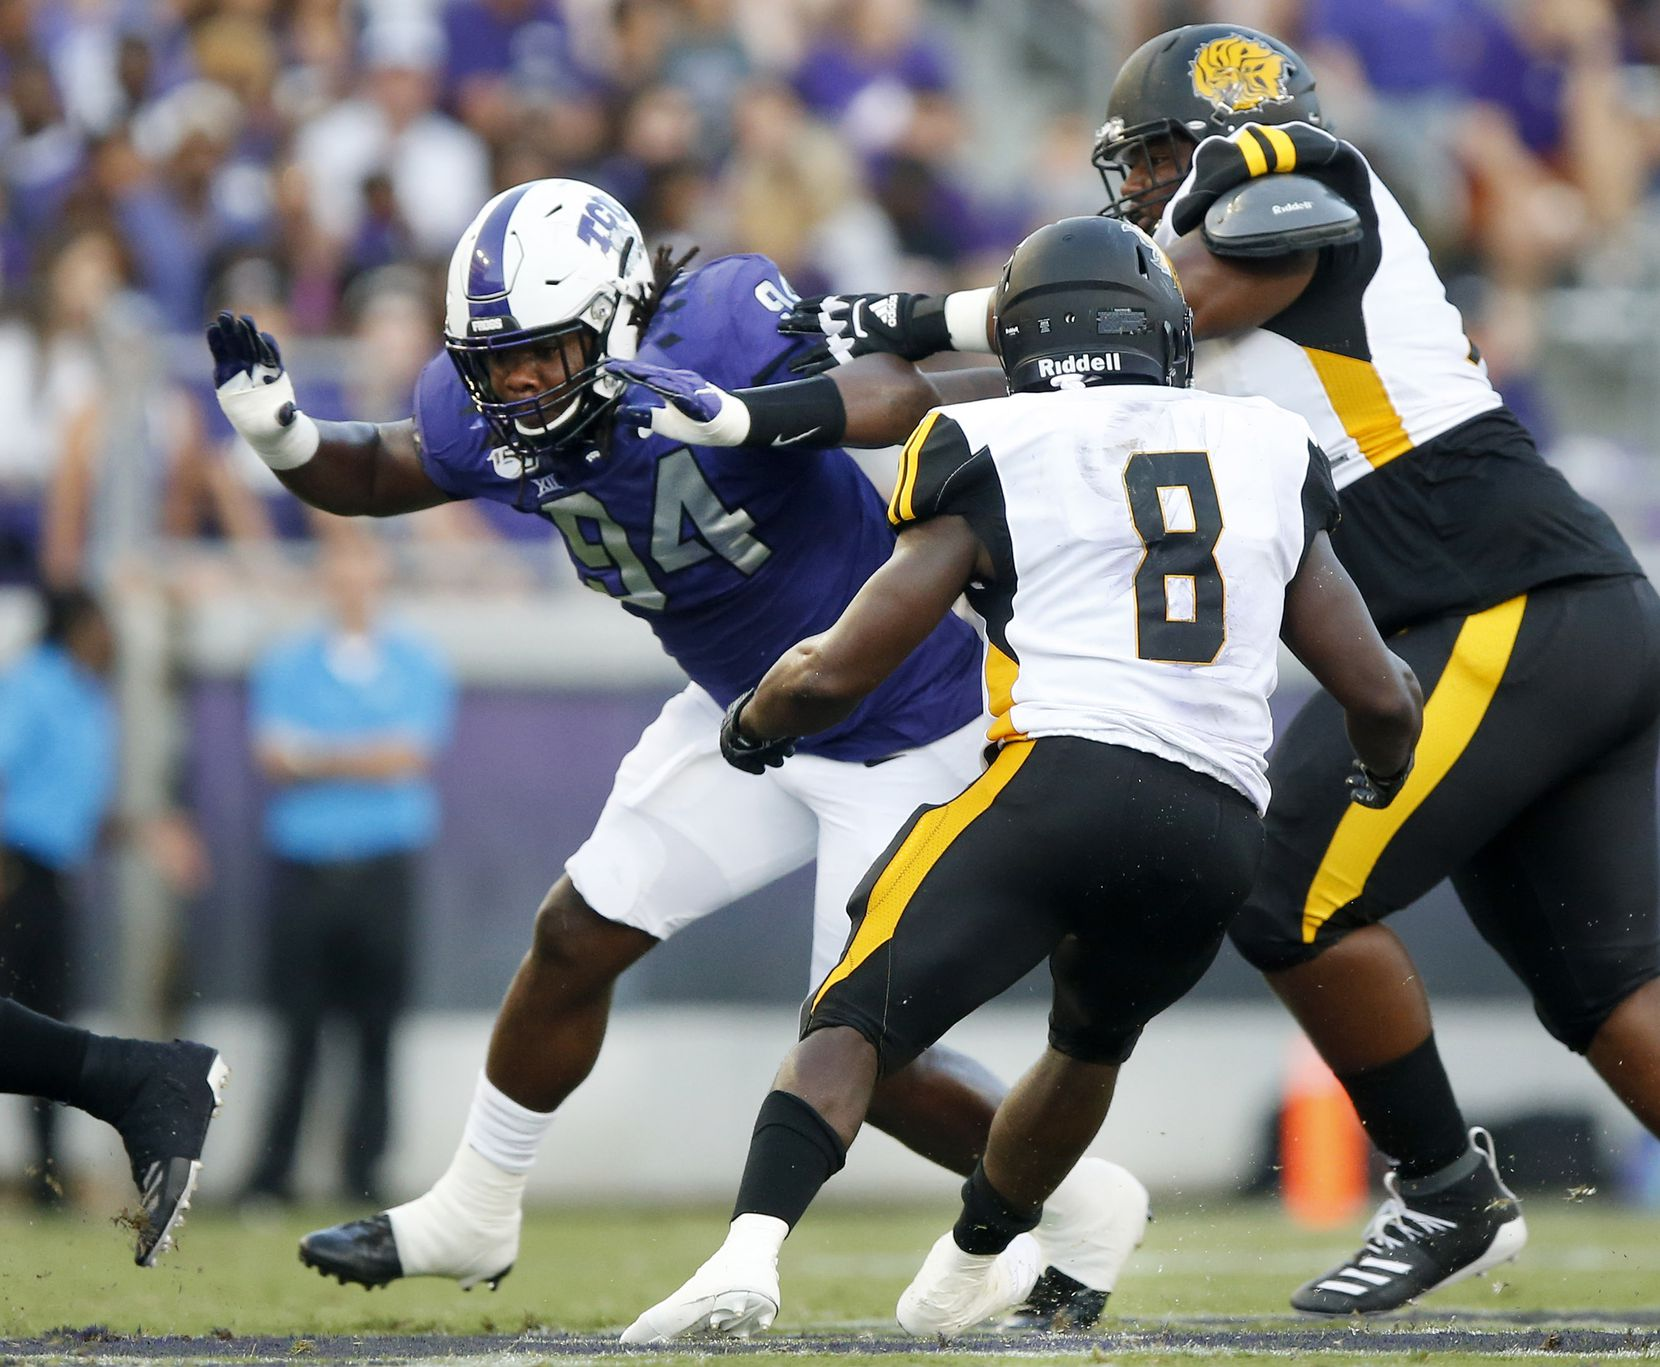 TCU Horned Frogs defensive tackle Corey Bethley (94) pass rushes the Arkansas-Pine Bluff Golden Lions defense during the first quarter at Amon G. Carter Stadium in Fort Worth Texas, Saturday, August 31, 2019.